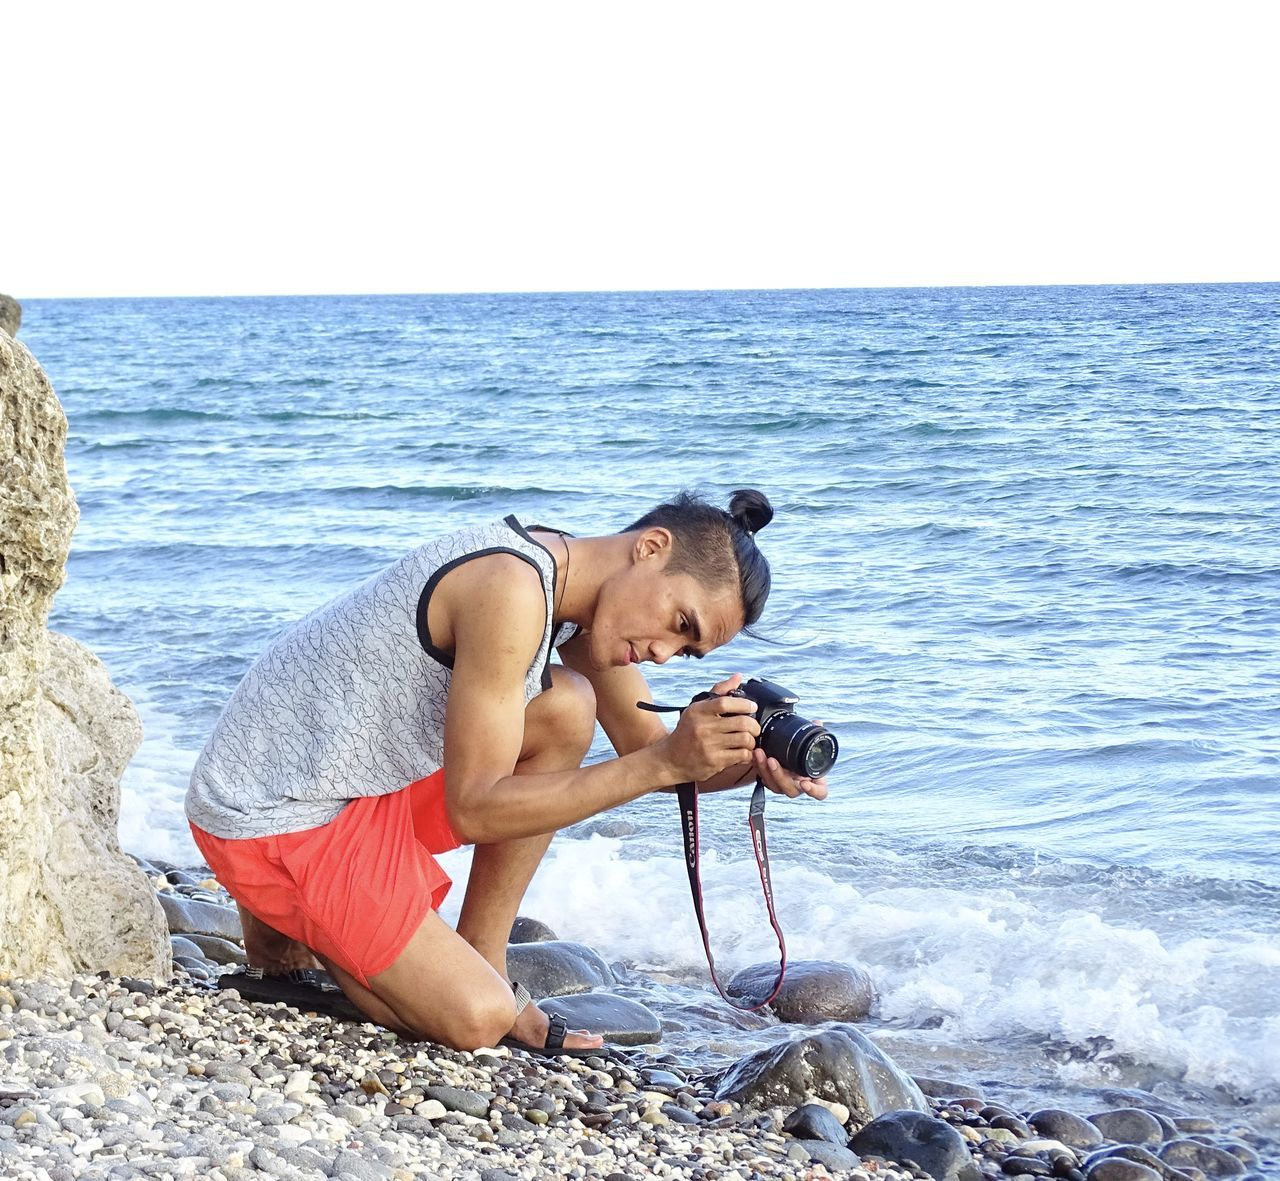 the photographer Asian  Batangas Beach Life Here Belongs To Me Lifestyles Malabrigo  Man Nature Outdoor Photography Philippines Relaxation Showcase April